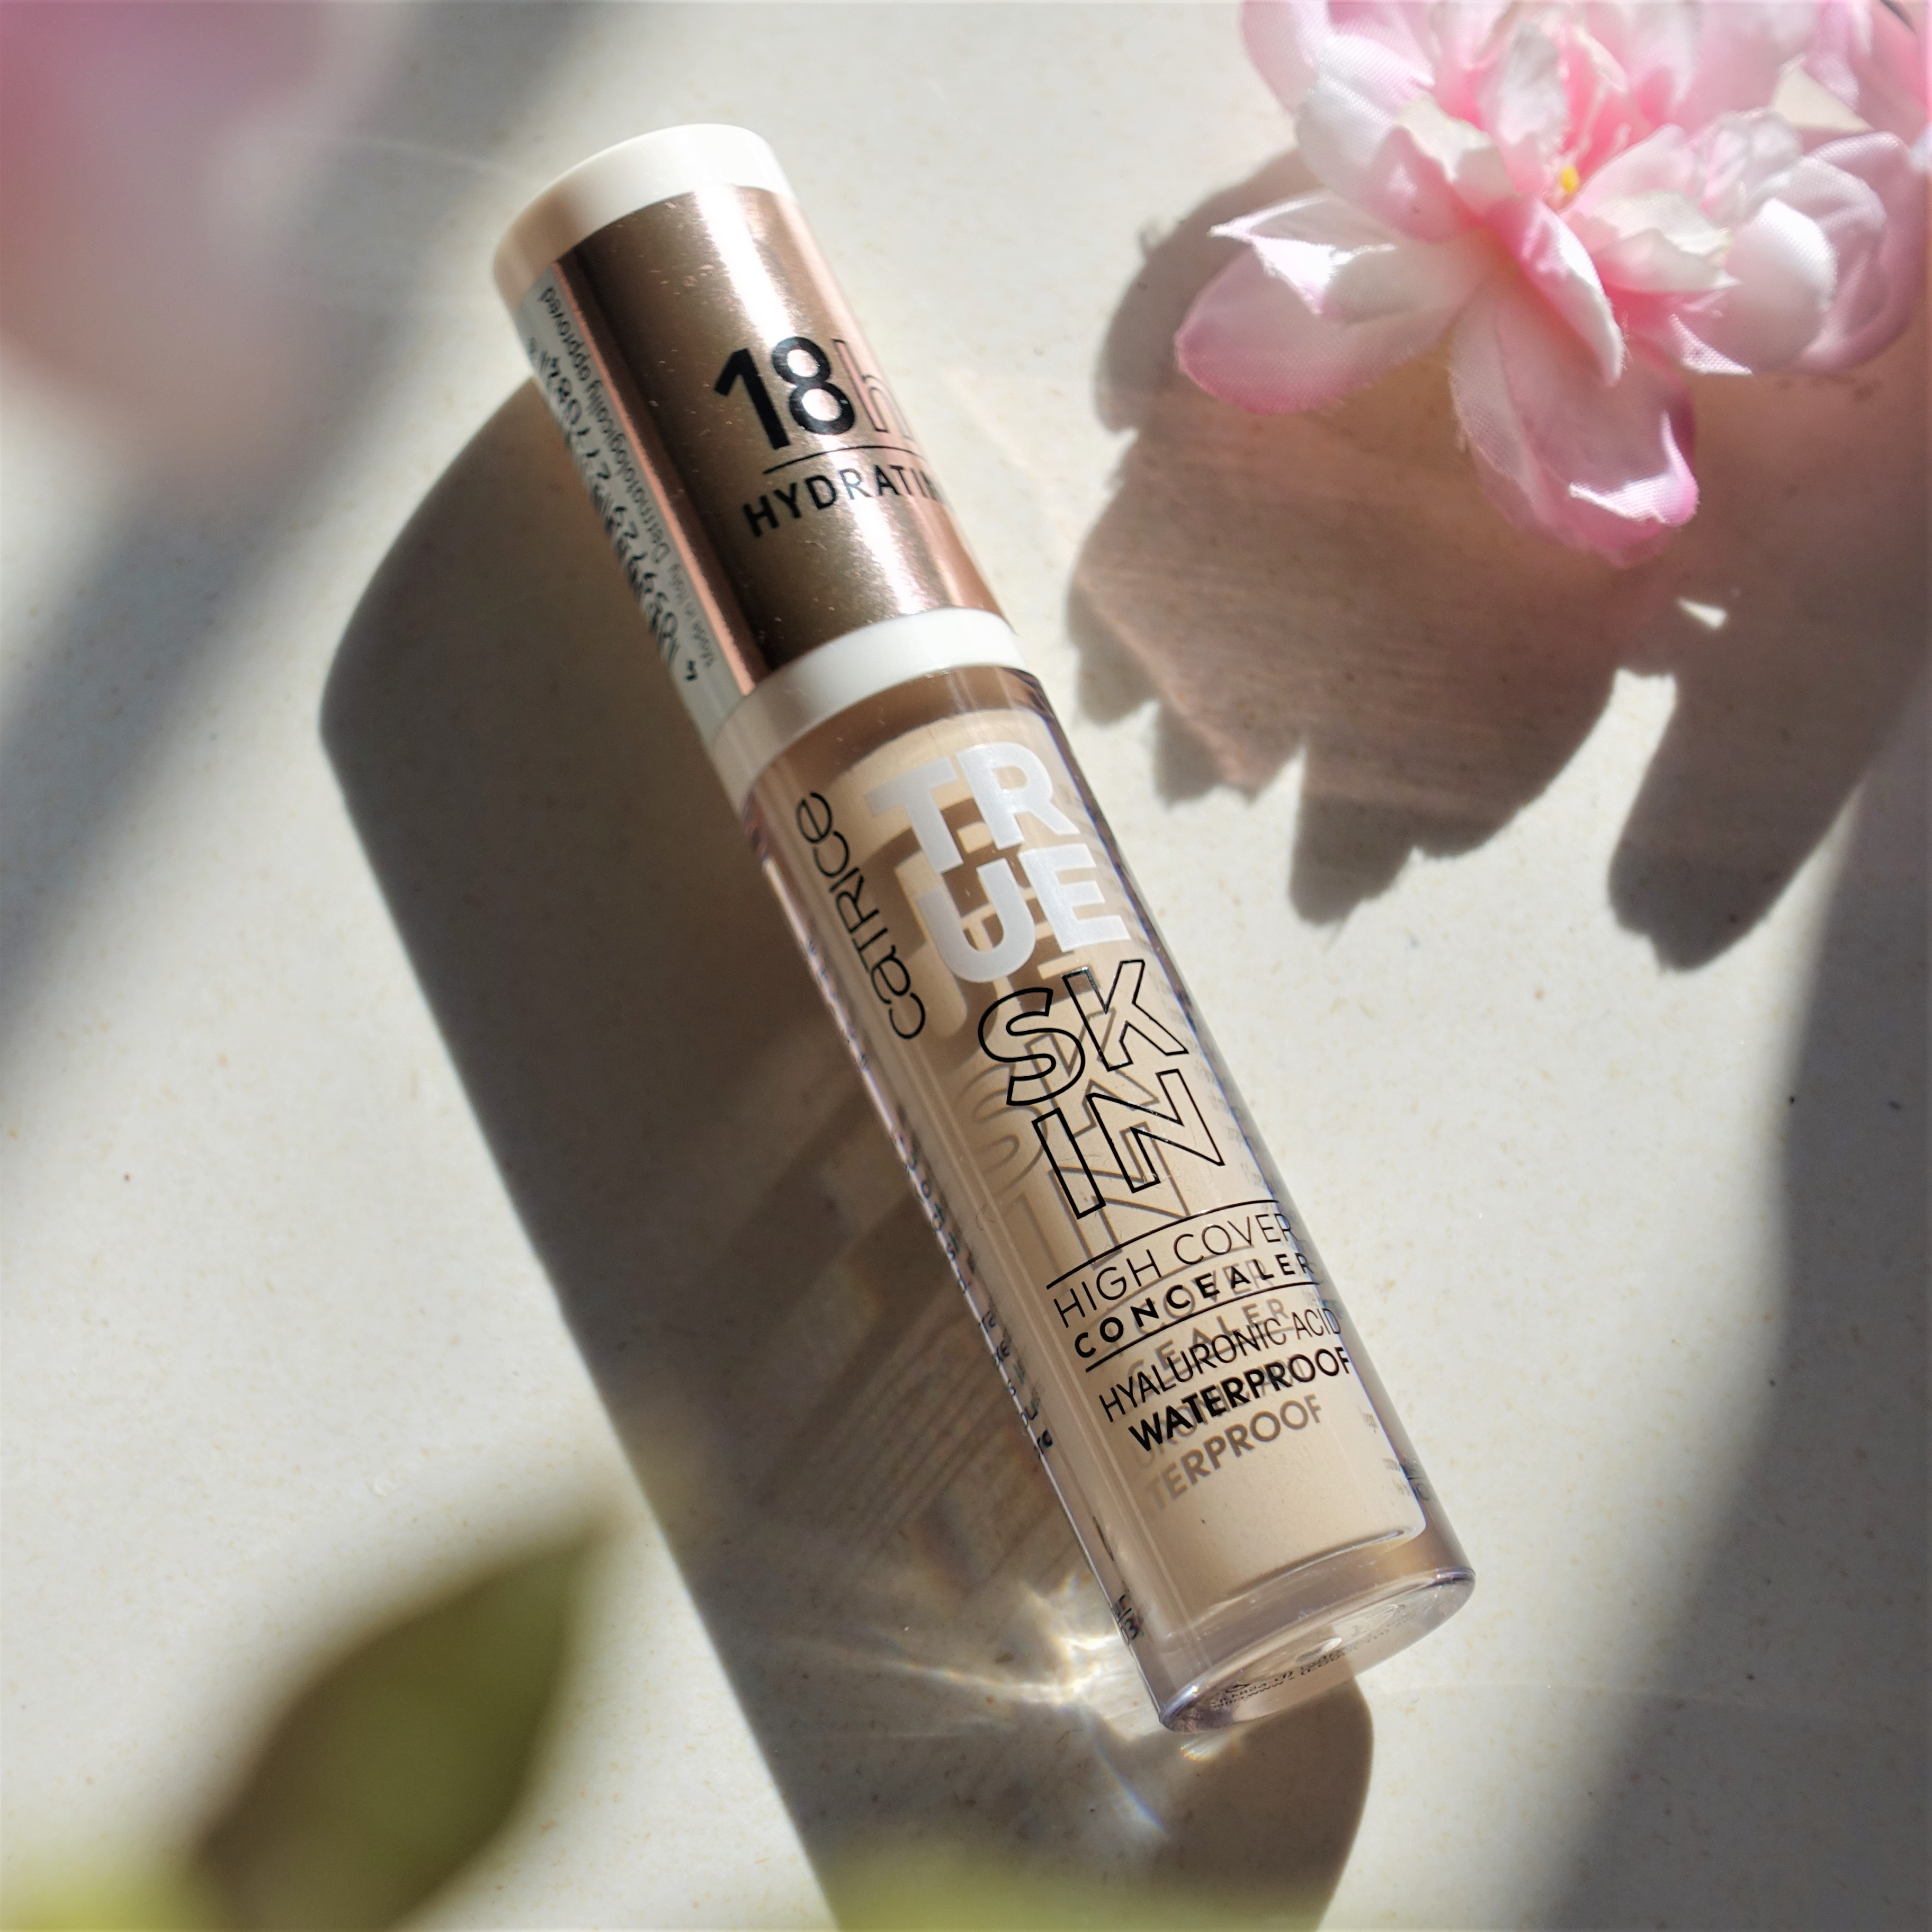 Catrice Cosmetics *It Pieces* Collection True Skin Concealer with Hyaluronic Acid - Review and Wear Test